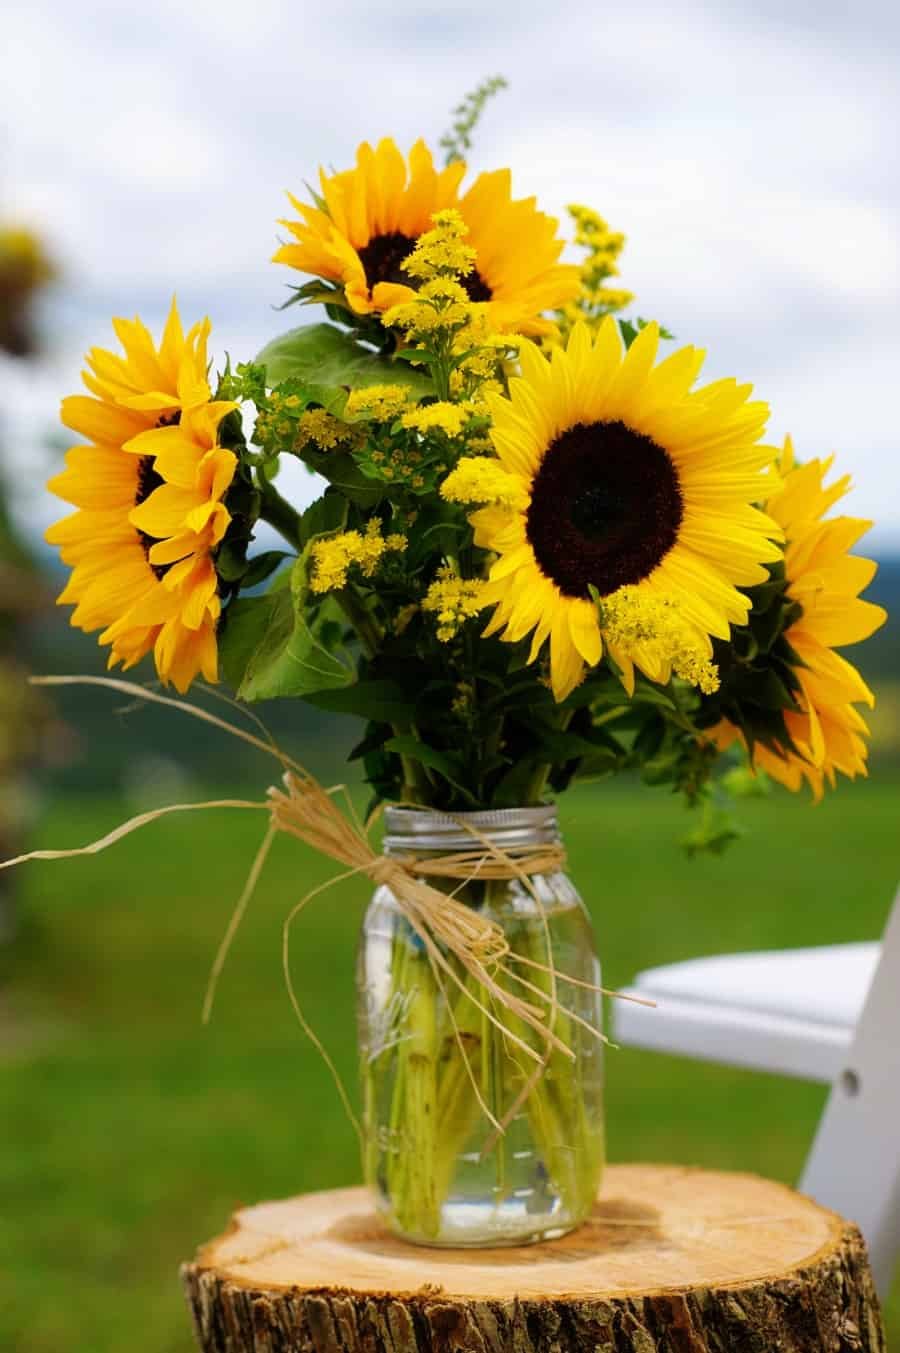 These bright yellow sunflowers are one of the best garden party ideas to try this year